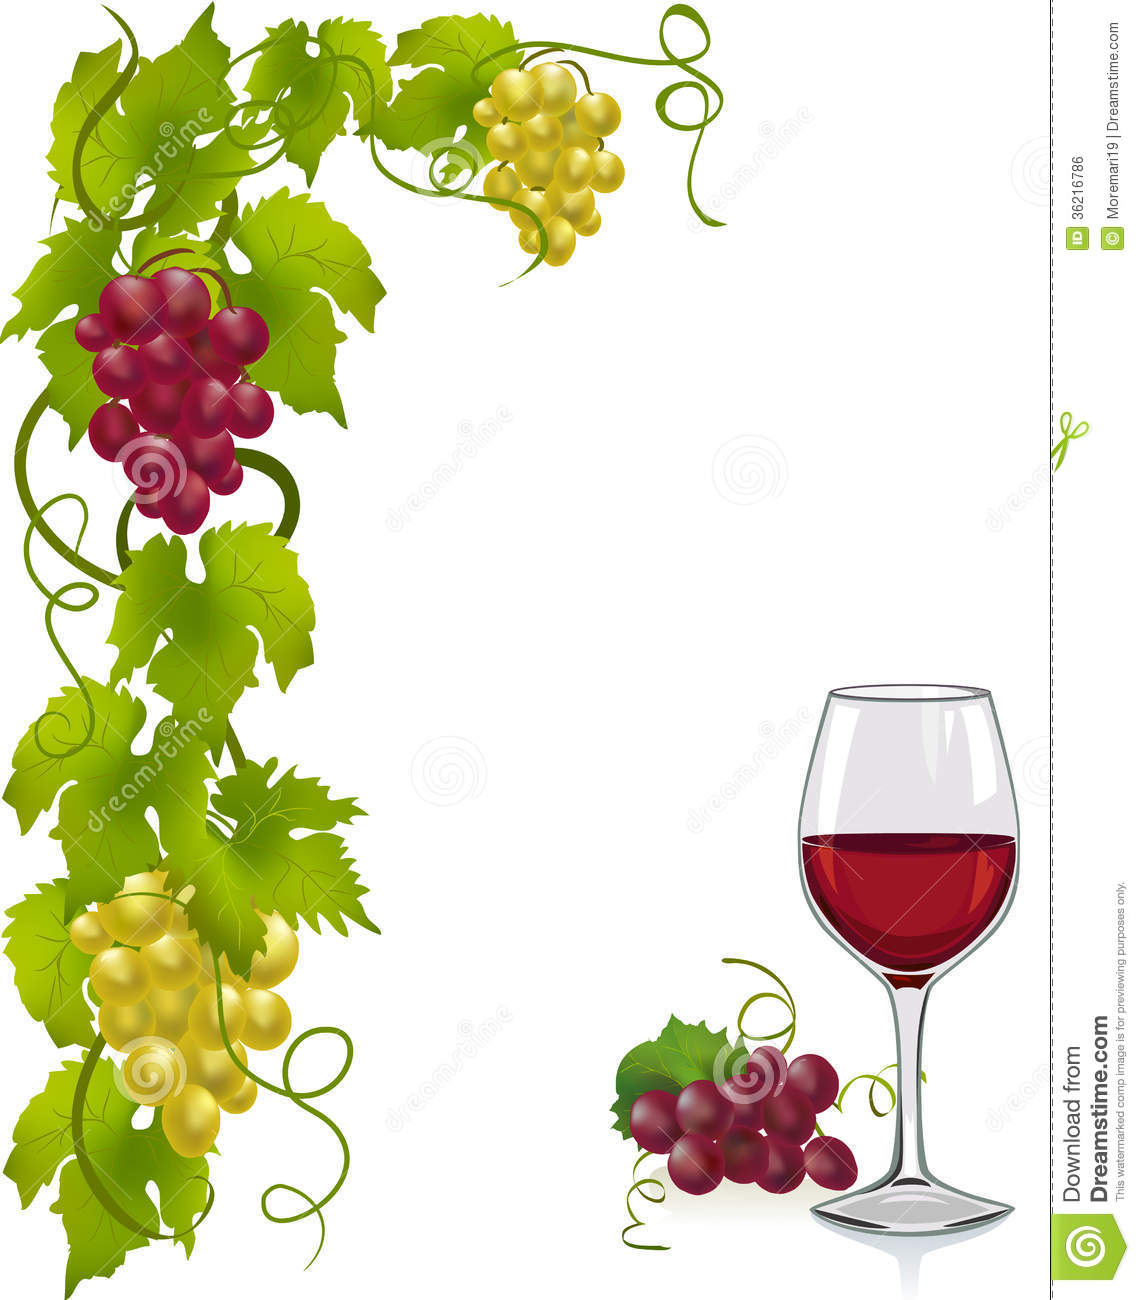 hight resolution of grape vine clipart grapevine frame stock photos grapevine free